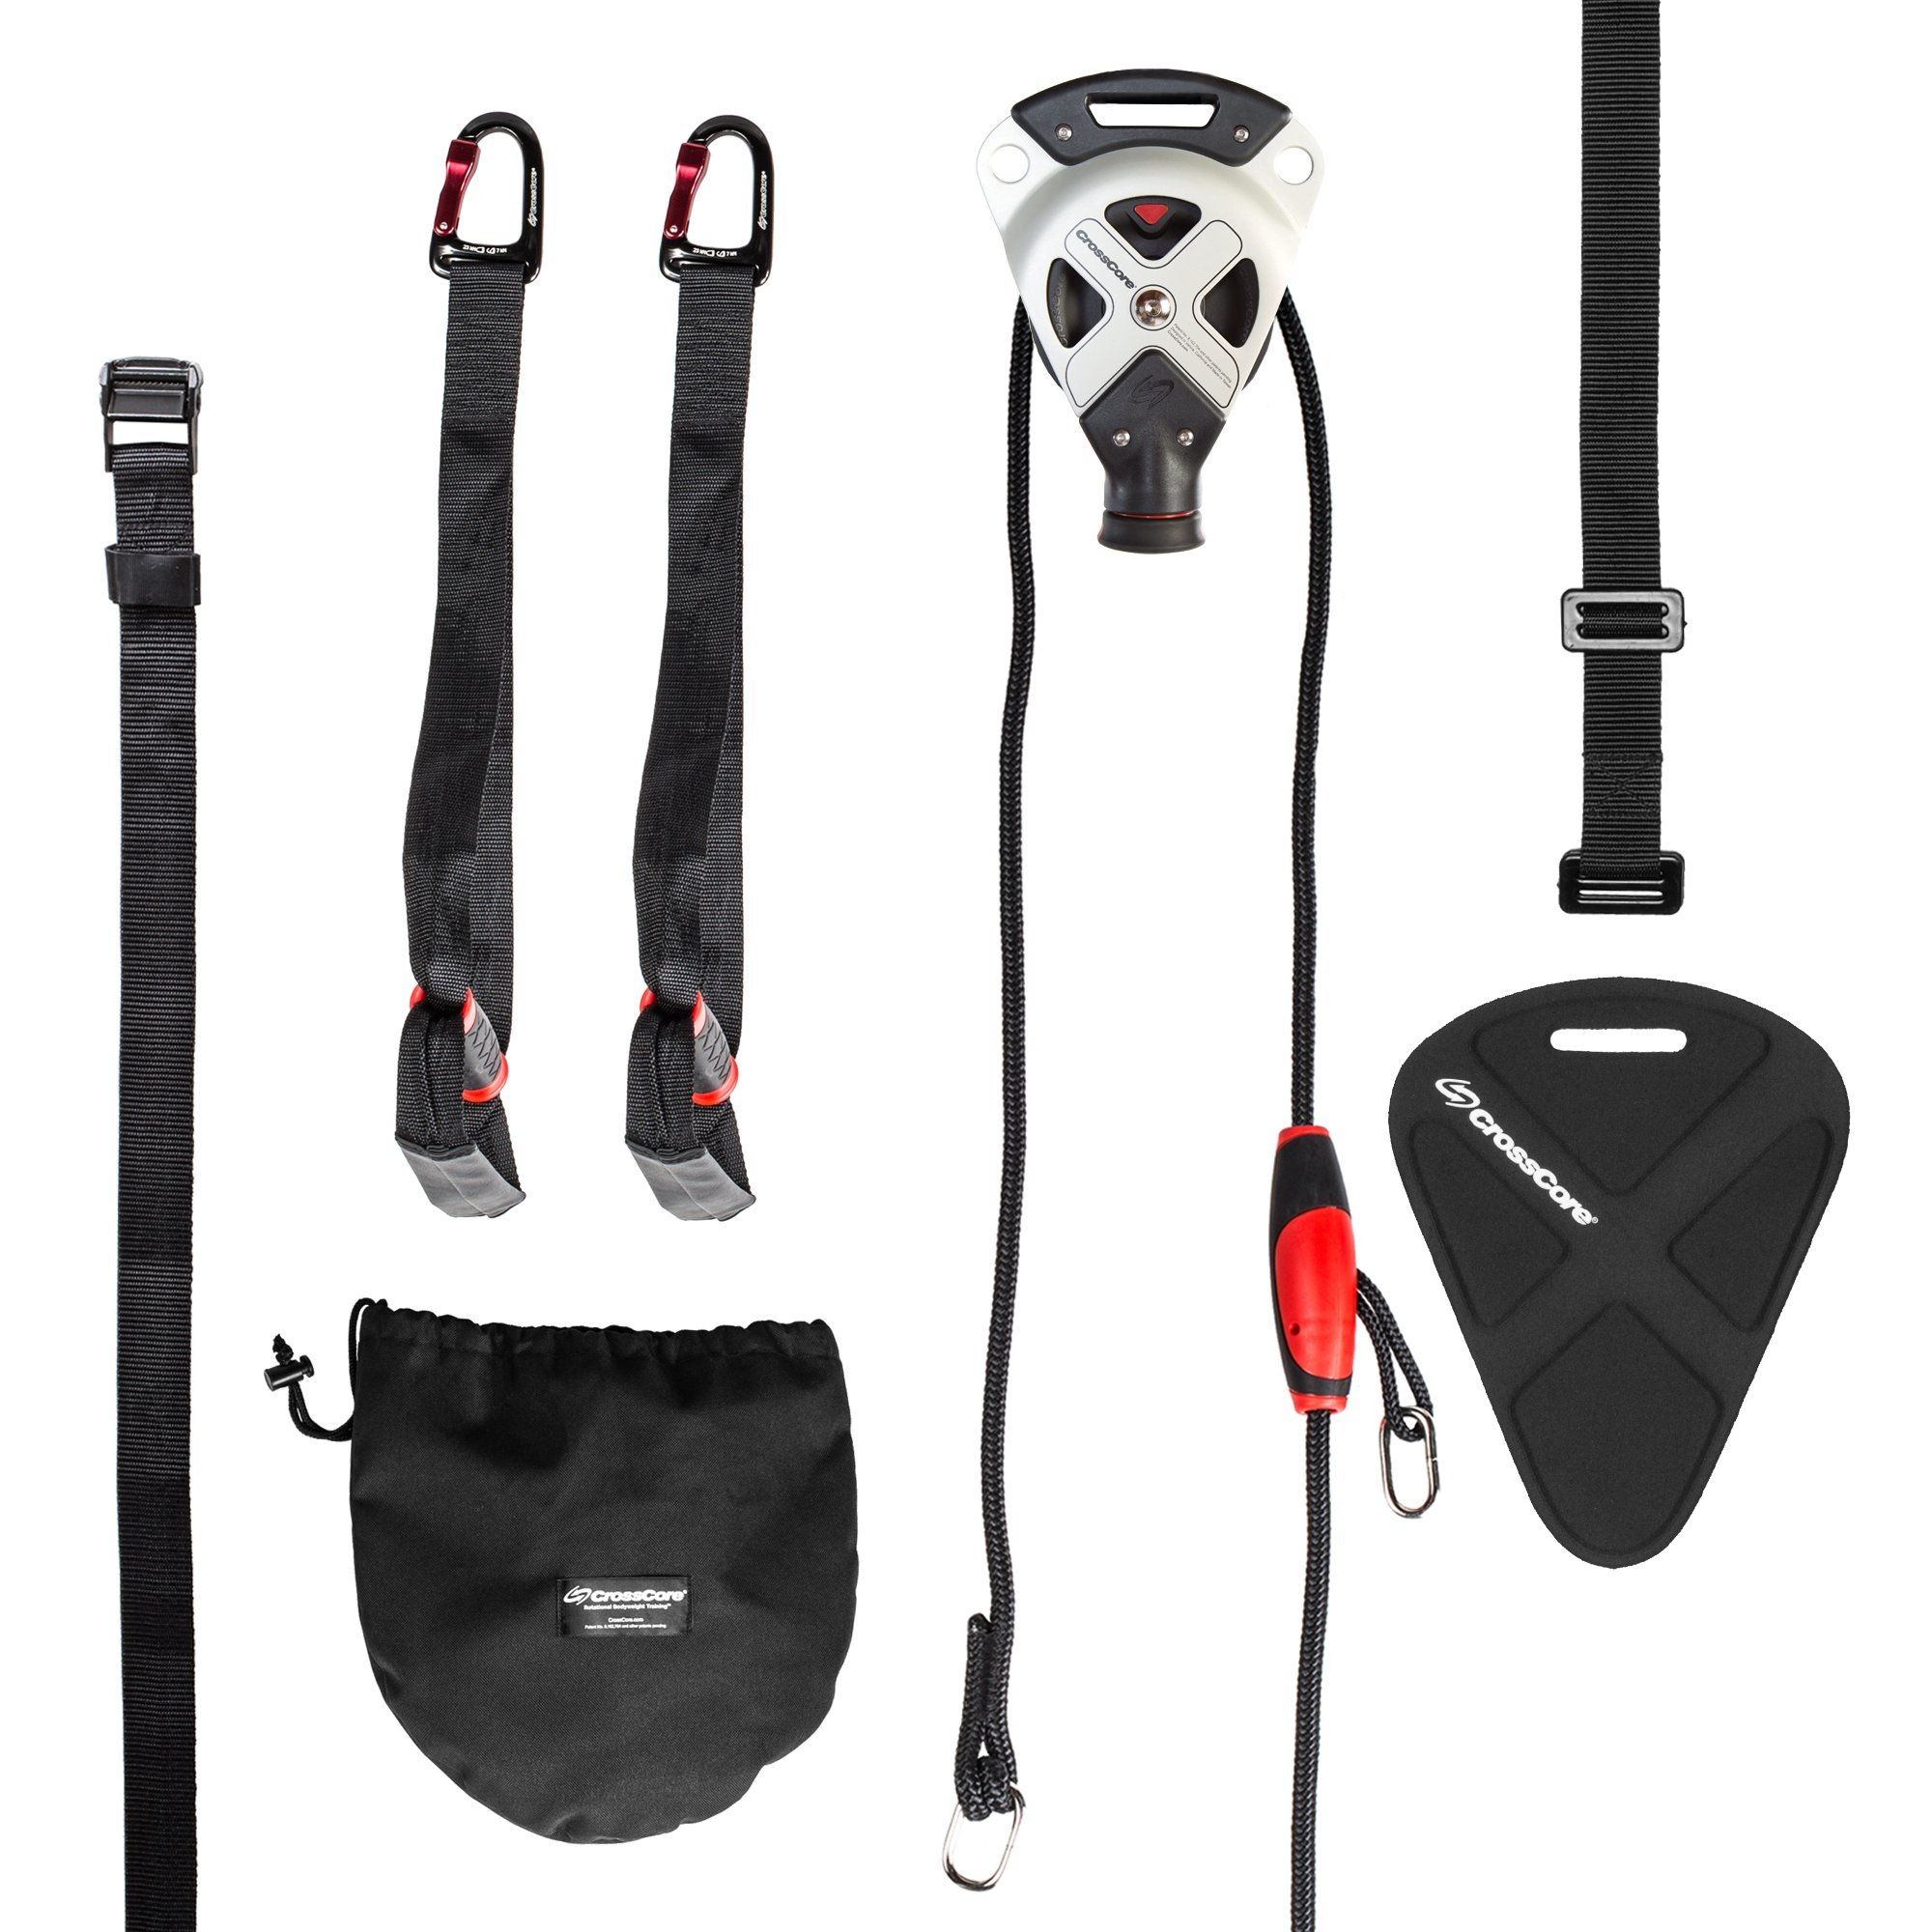 CrossCore System Suspension Trainer Fitness Equipment + Home Kit by CrossCore